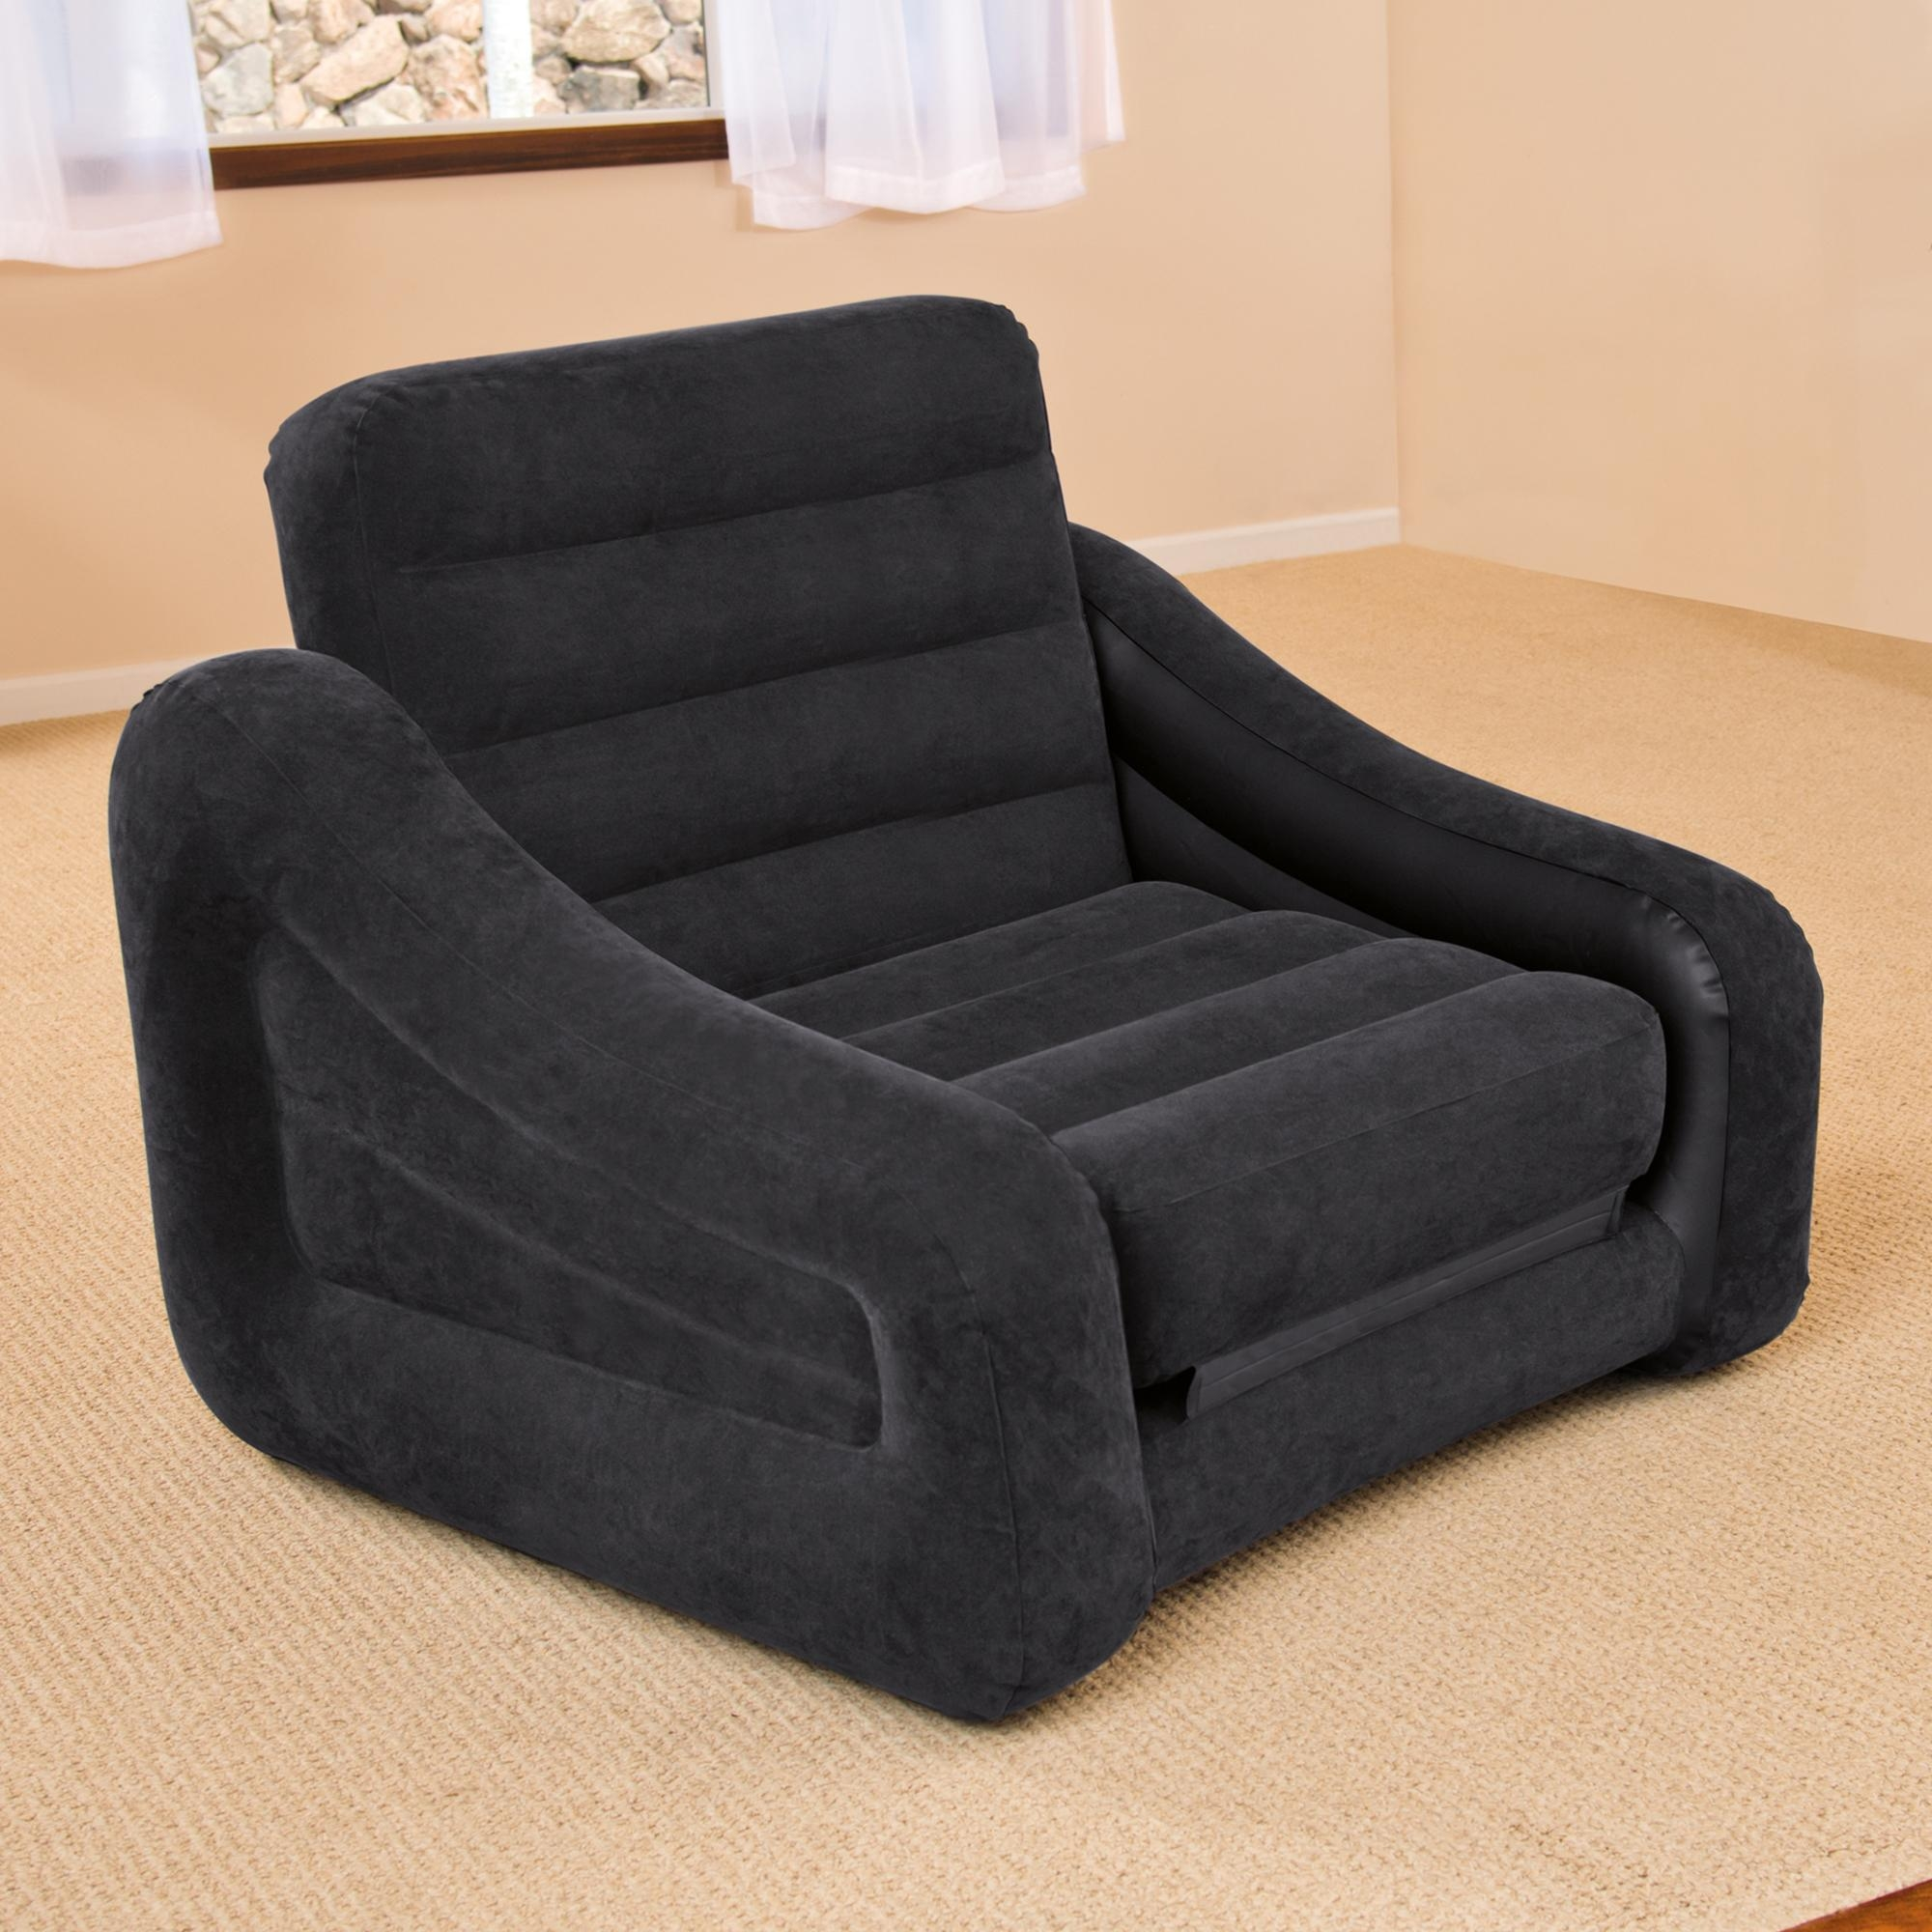 Intex Inflatable Pull Out Chair And Twin Bed Mattress Sleeper Regarding Intex Air Sofa Beds (View 18 of 20)